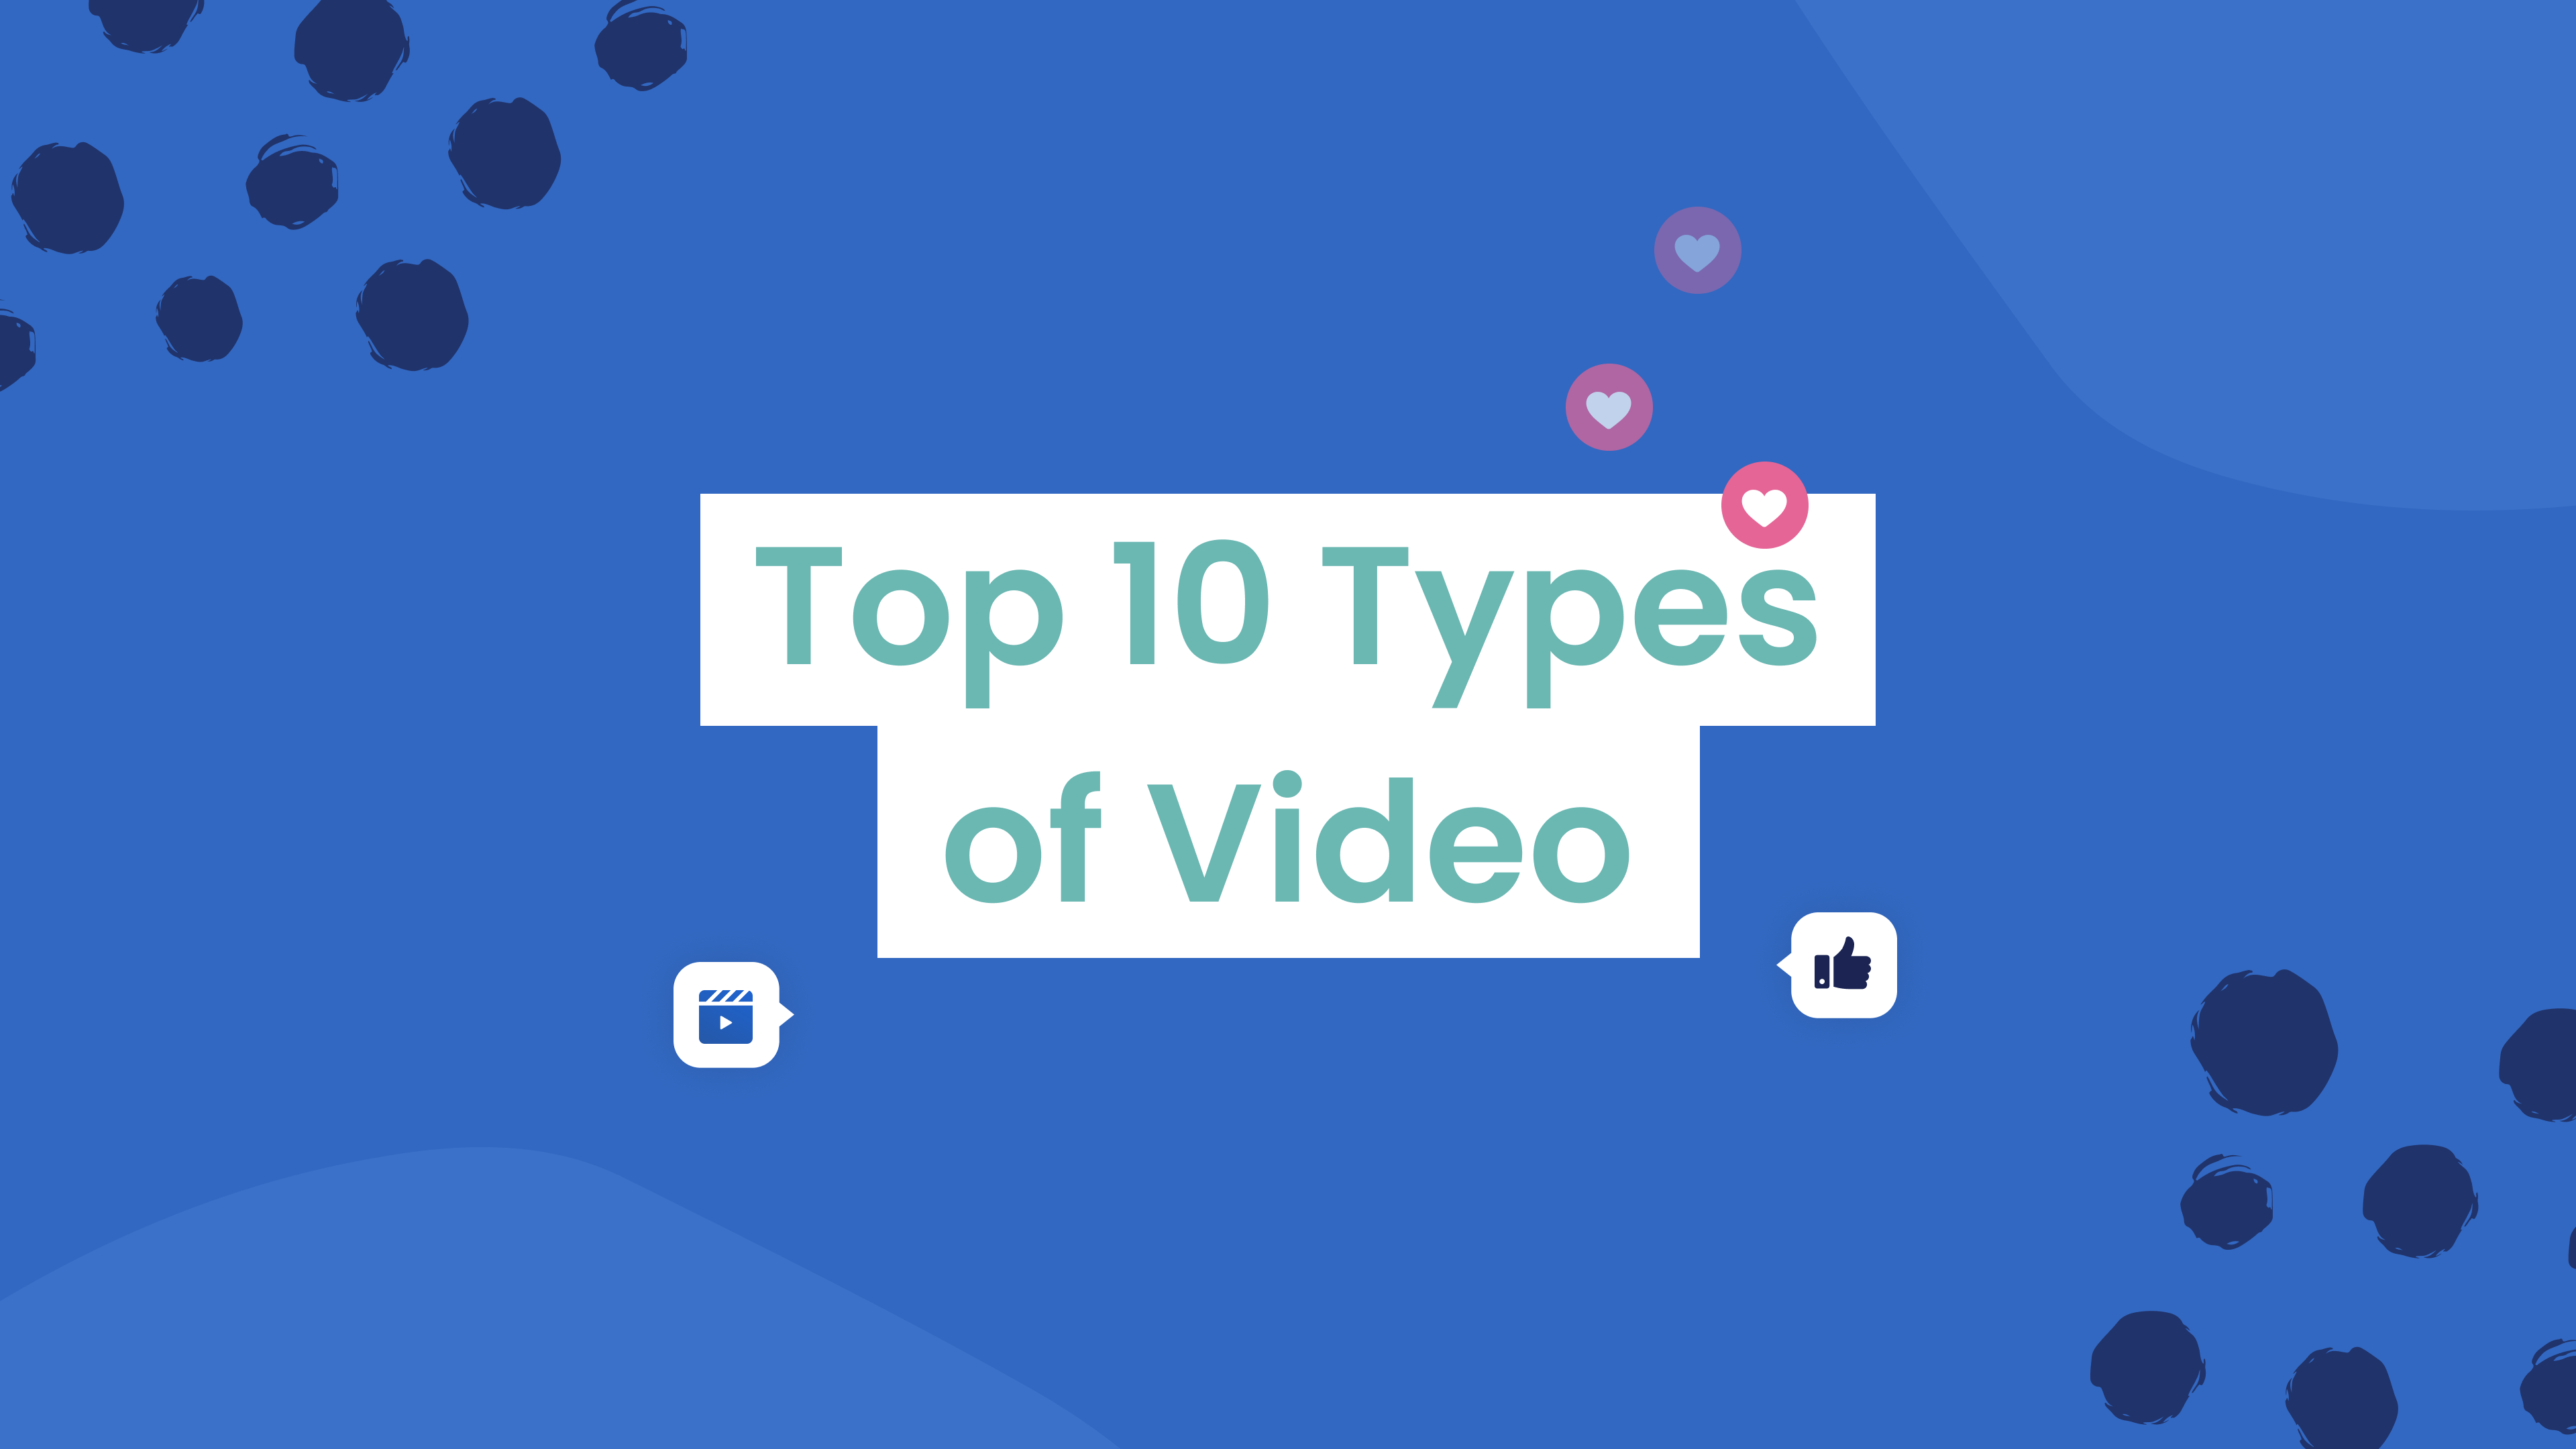 The Top 10 Types of Video in 2021